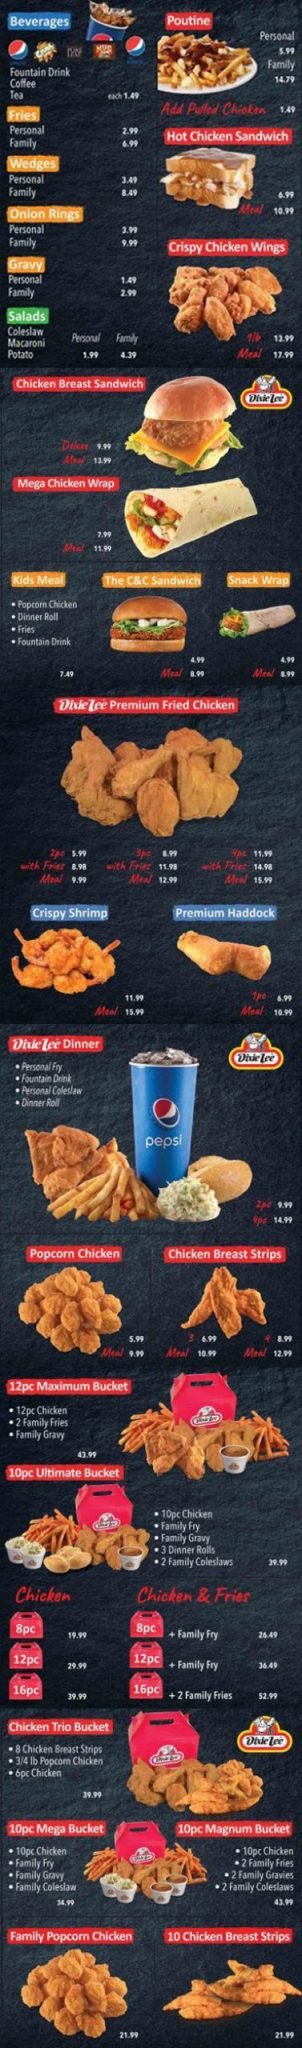 Dixie Lee Fried Chicken Menu